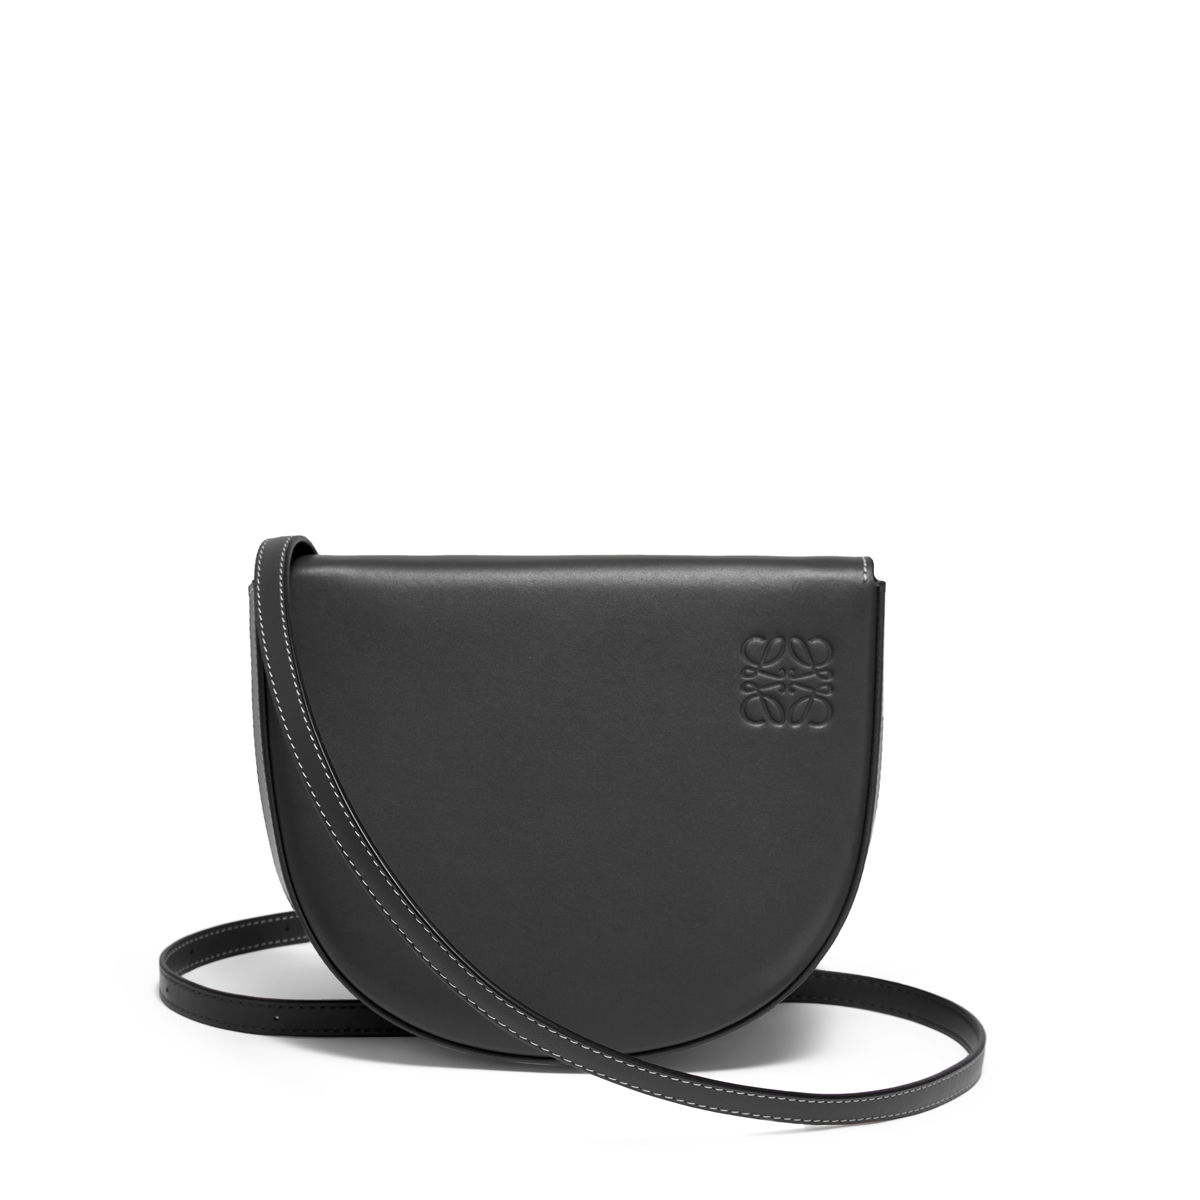 HEEL MINI BAG 【送料無料】